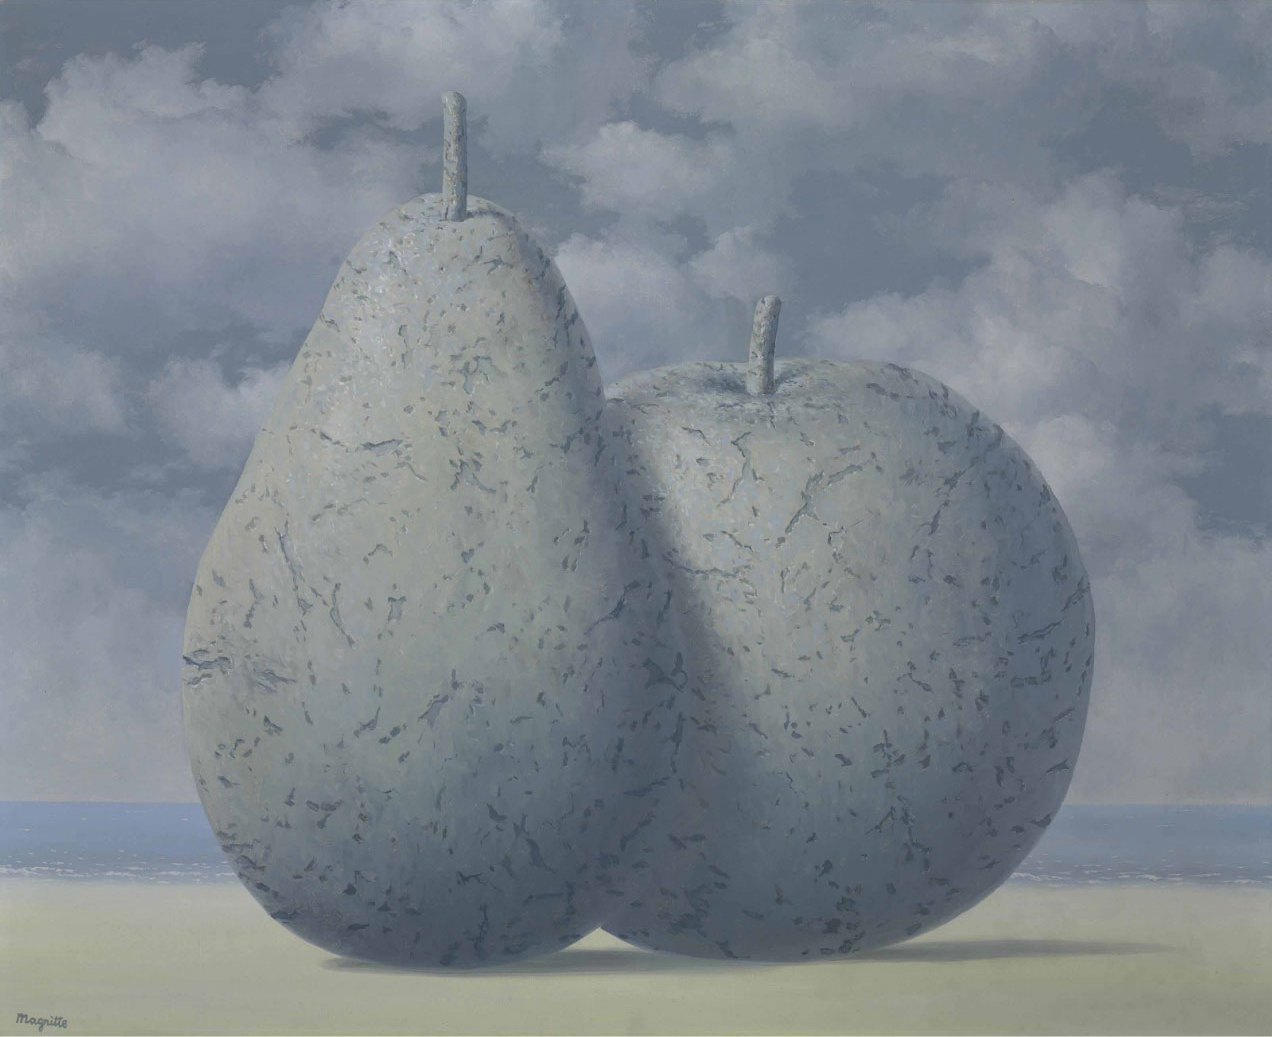 magritte, insight, coaching, silence